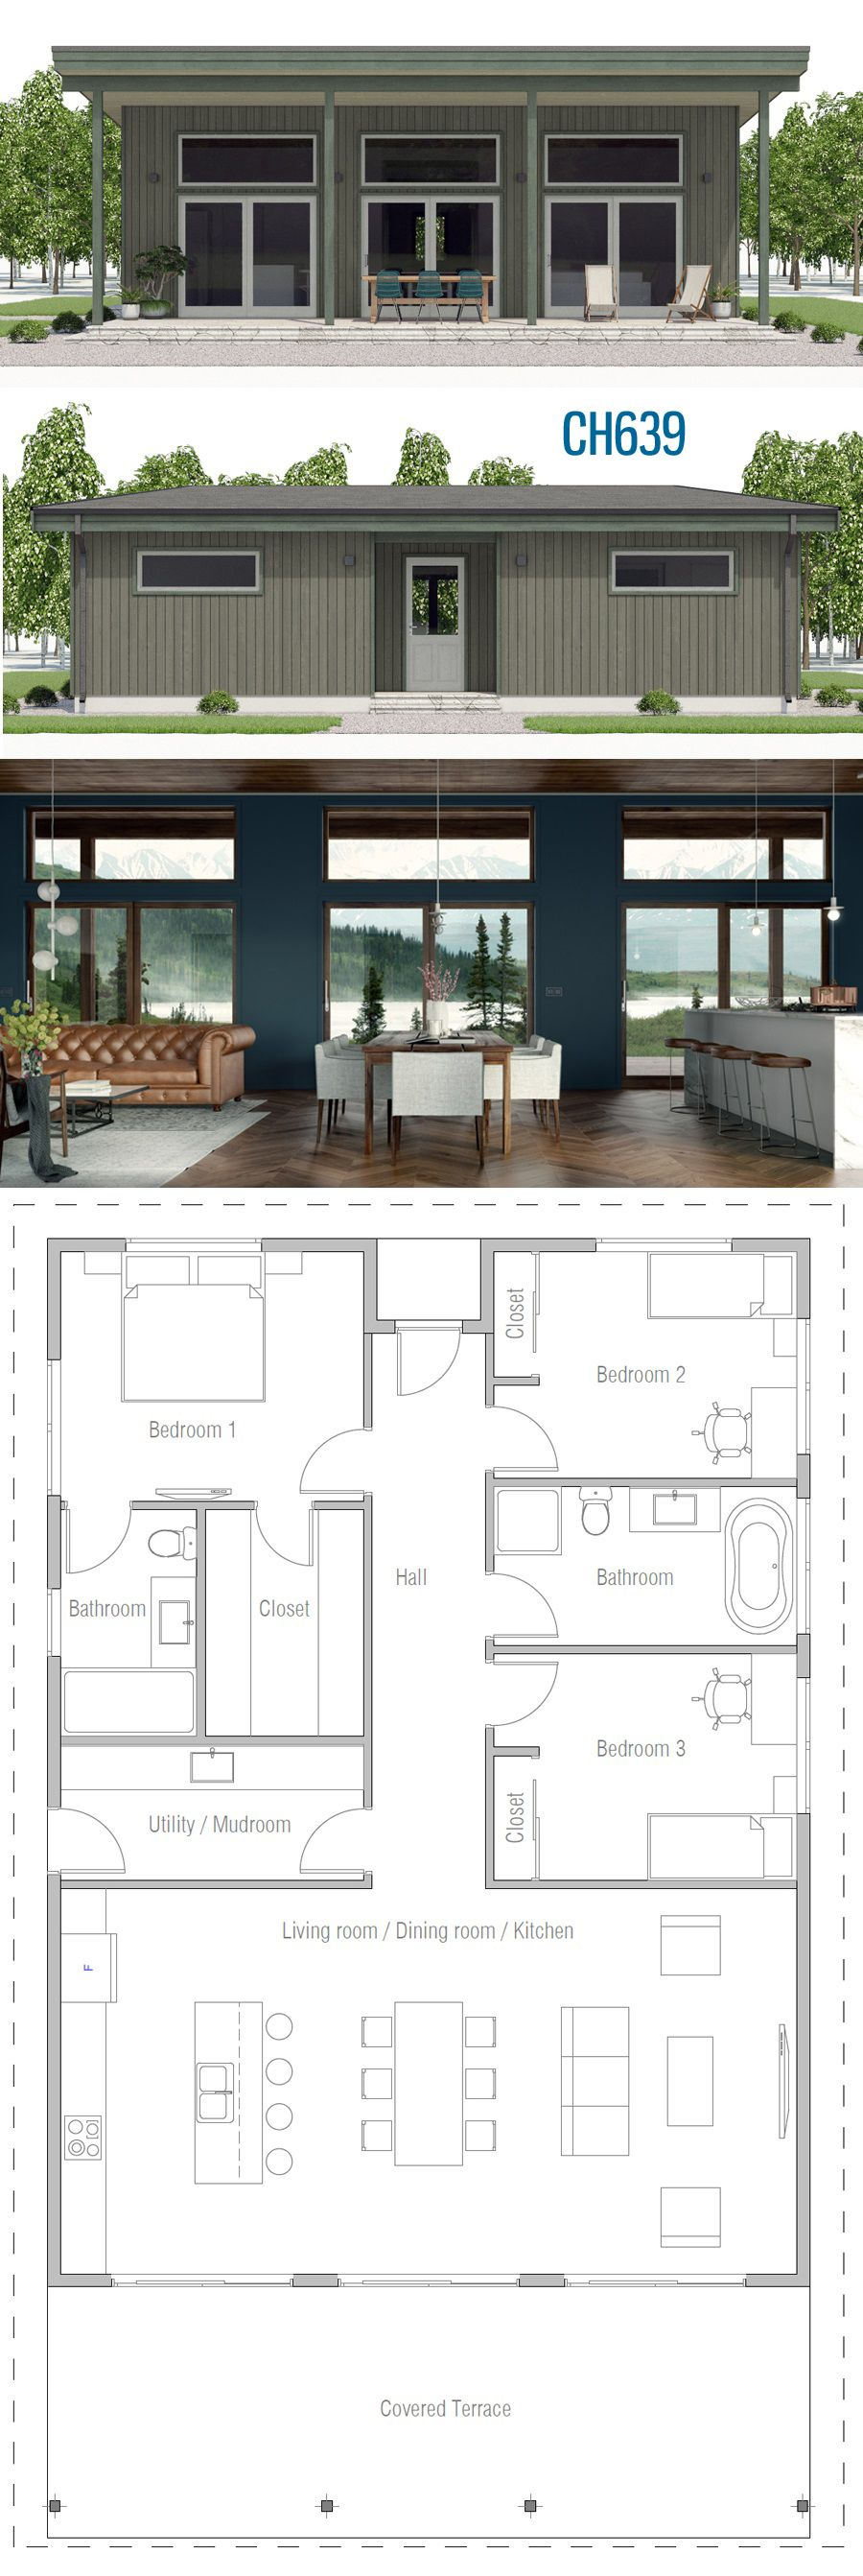 House Plan Ch639 House Plans House Design Small Modern House Plans